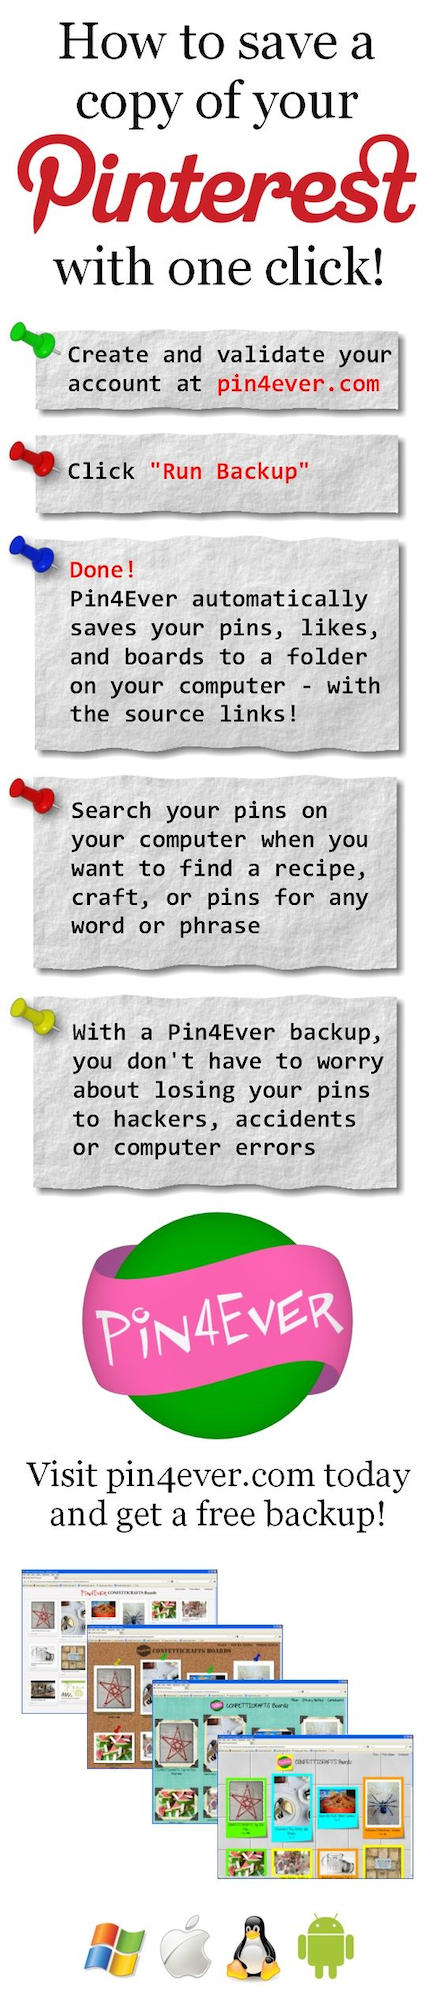 Backup your Pinterest pins